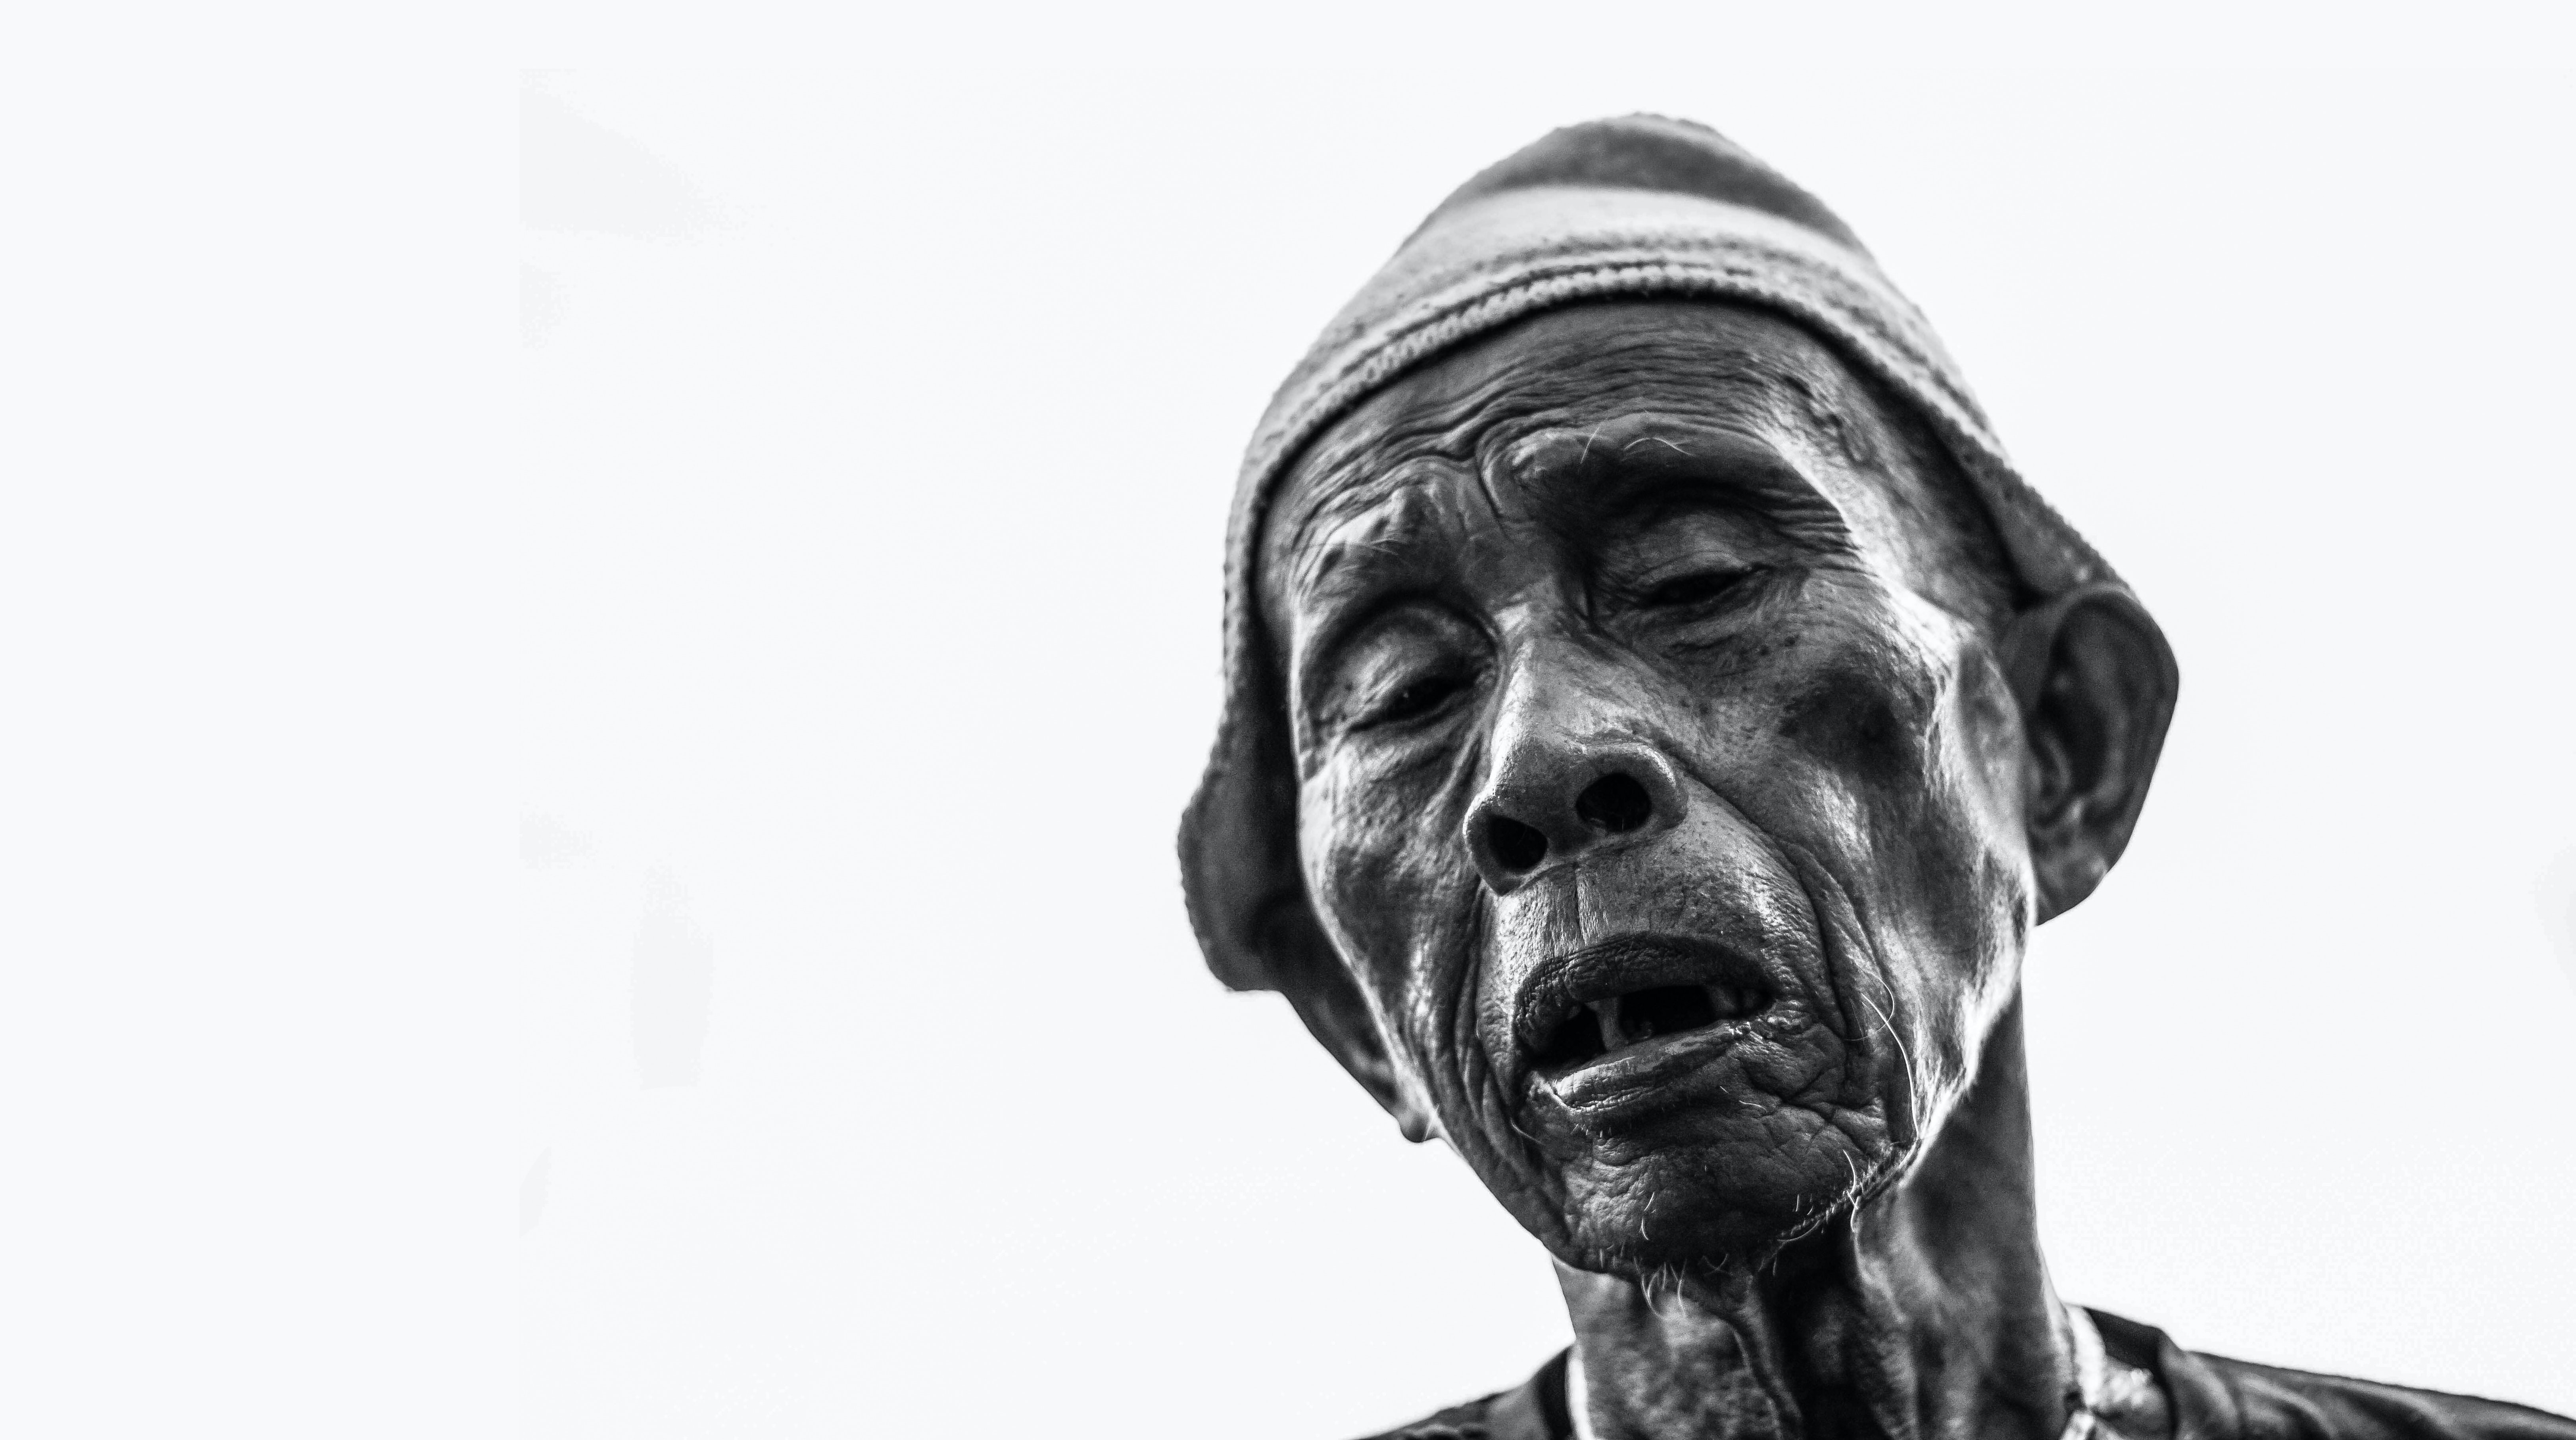 man face grayscale photography